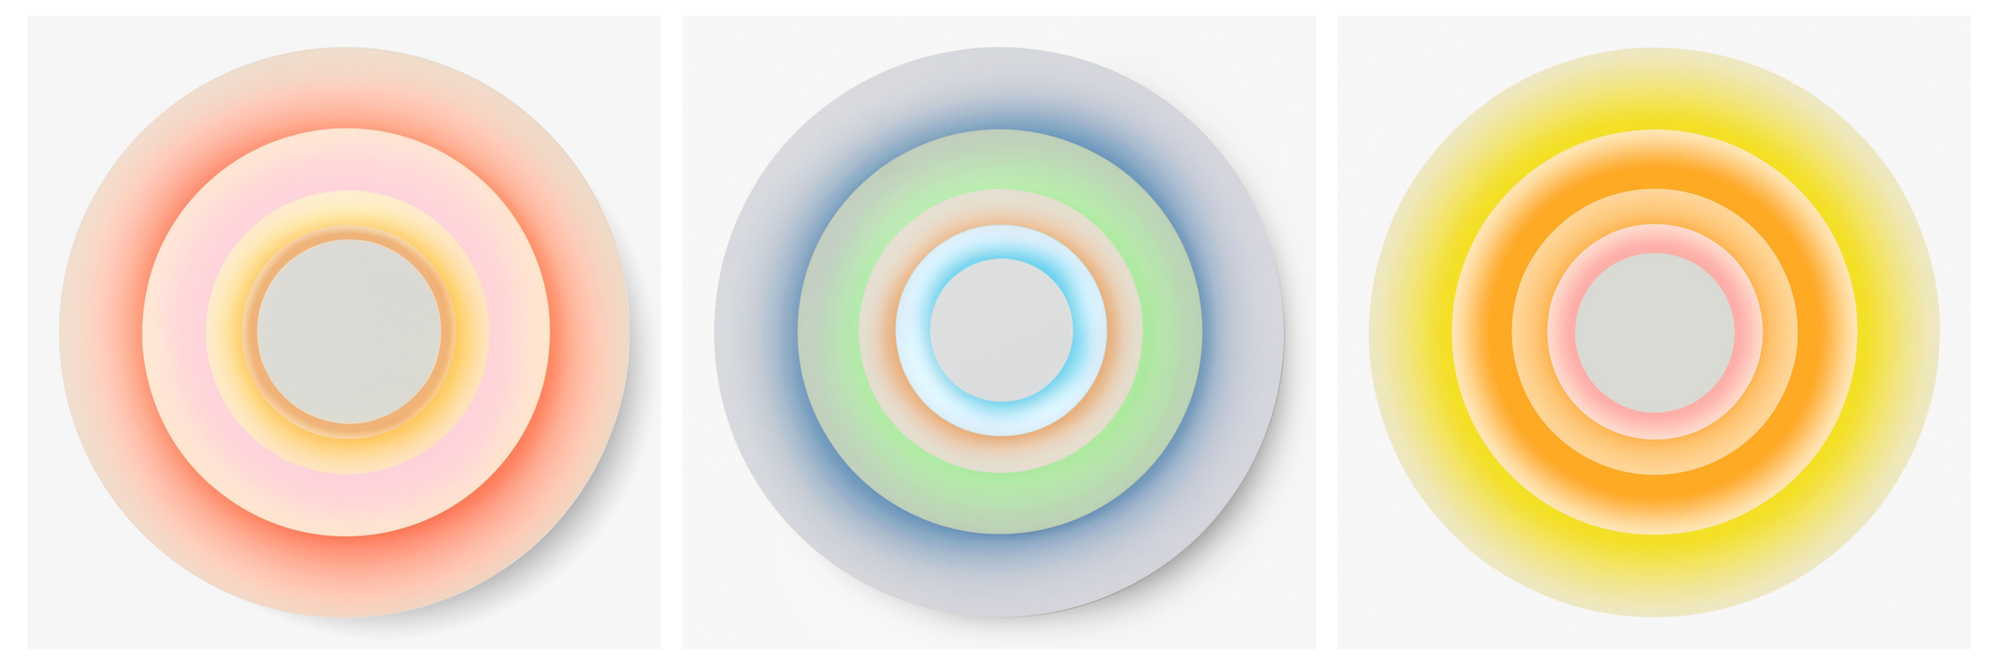 Today's pastels in cheerful ice cream tinged hues like peach, pink lemonade, mint and banana are anything but bland. Cases in point are the various iterations of the Marset concentric sconce at ABC Home.